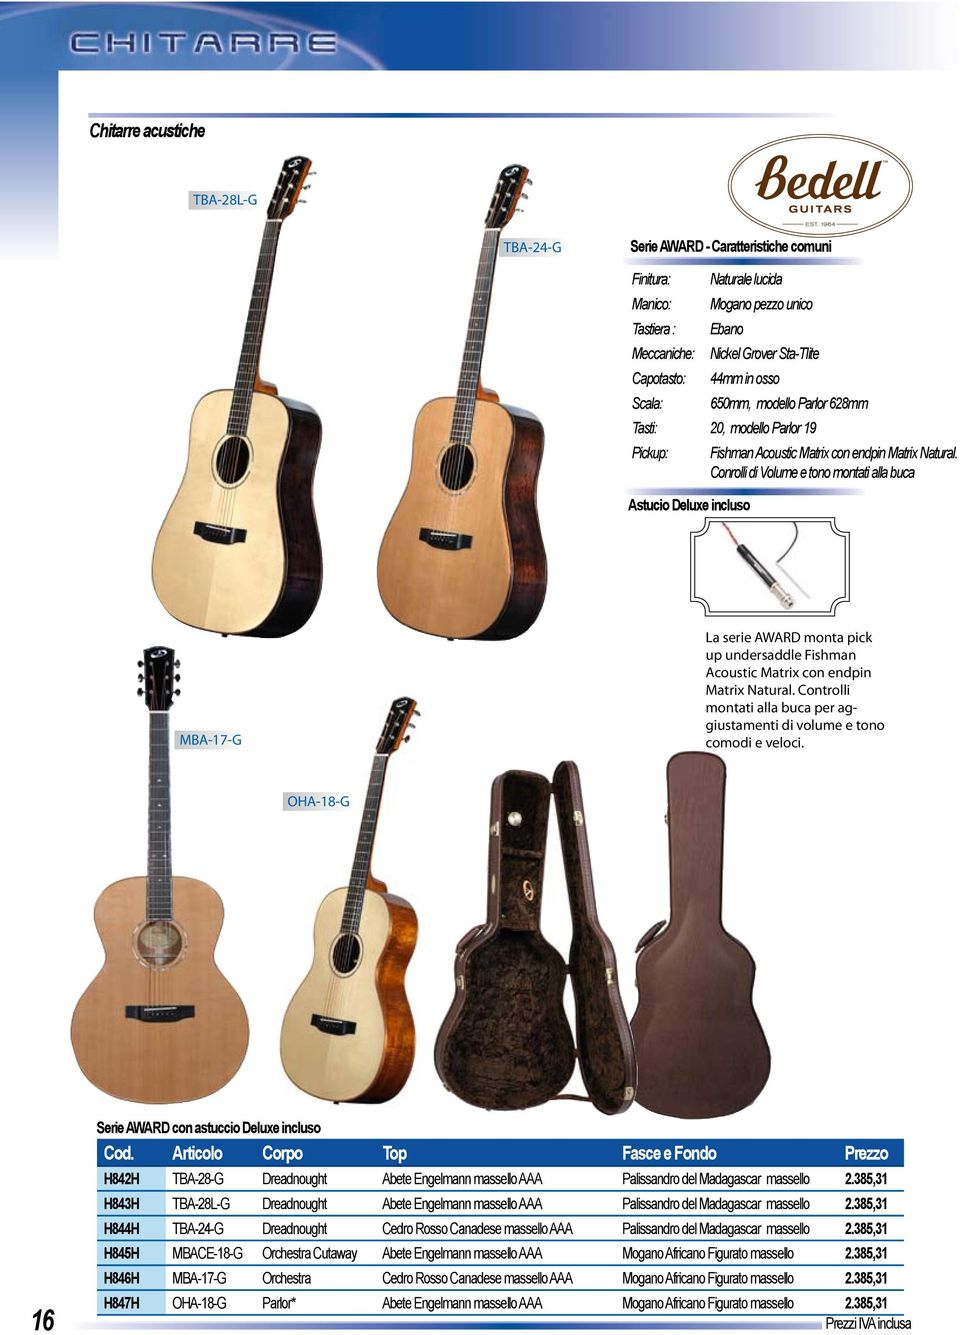 Conrolli di Volume e tono montati alla buca MBA-17-G La serie AWARD monta pick up undersaddle Fishman Acoustic Matrix con endpin Matrix Natural.